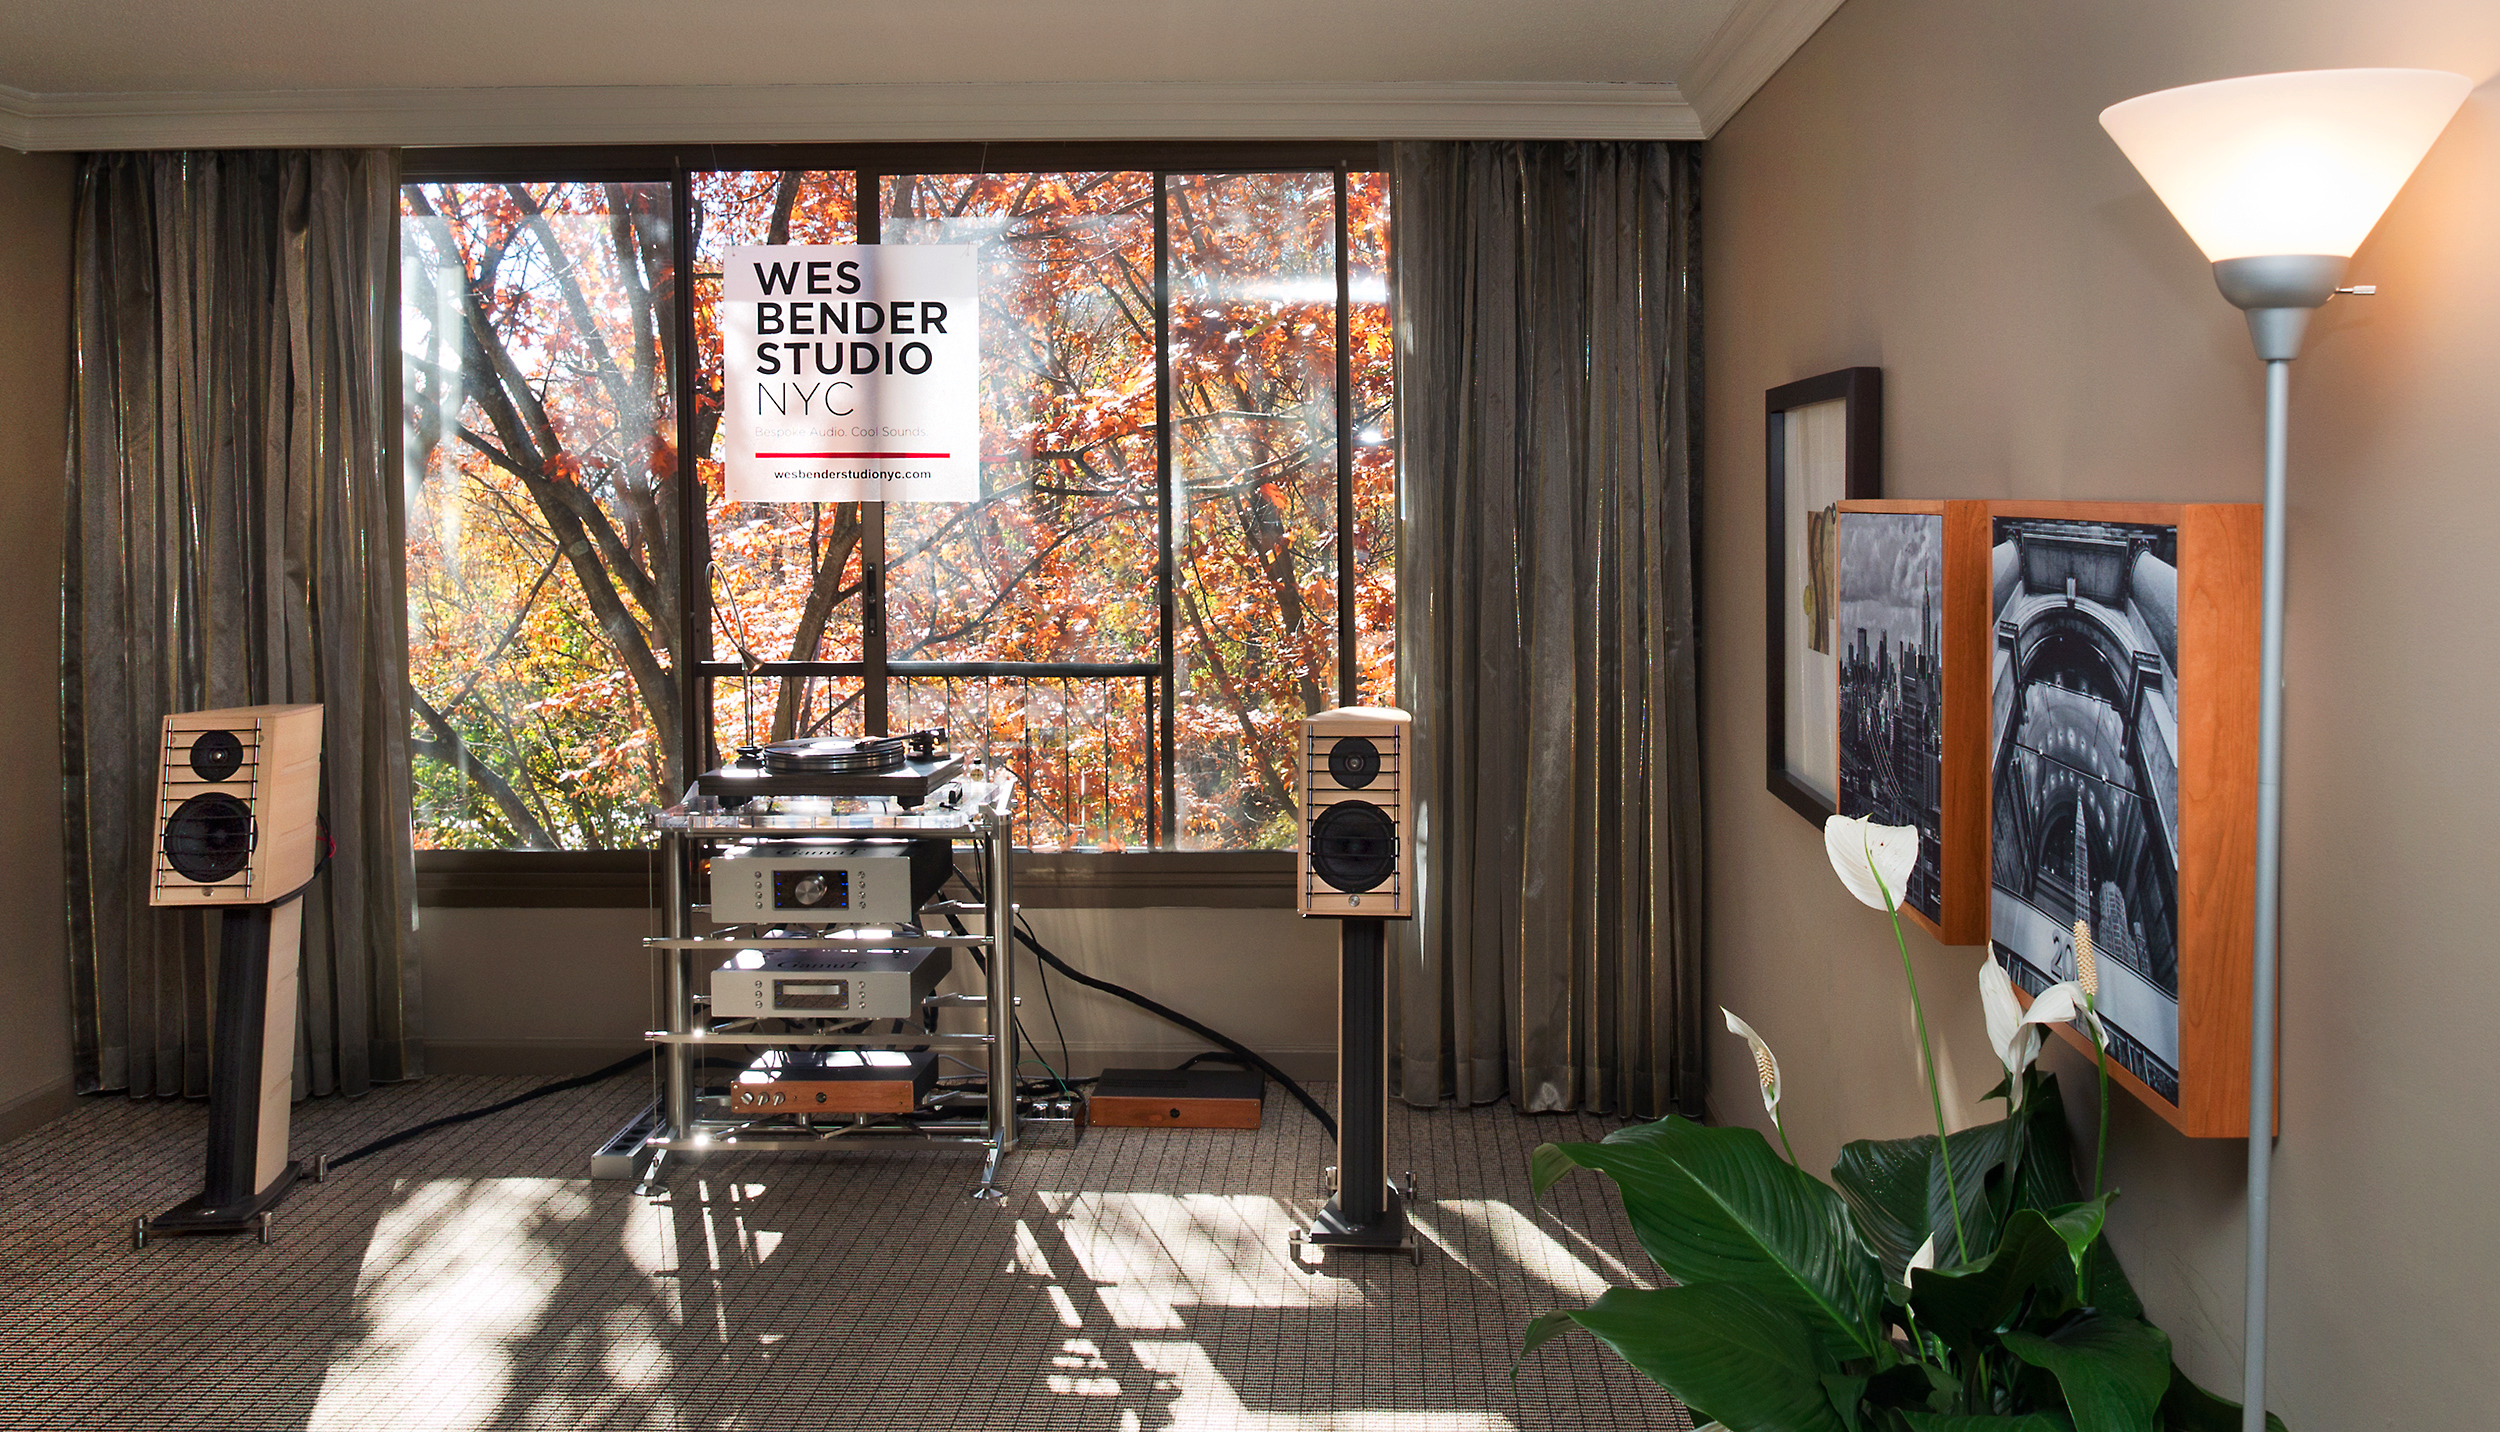 Wes Bender Studio NYC and GamuT Room at NY Audio Show 2015© 2015 Wes Bender